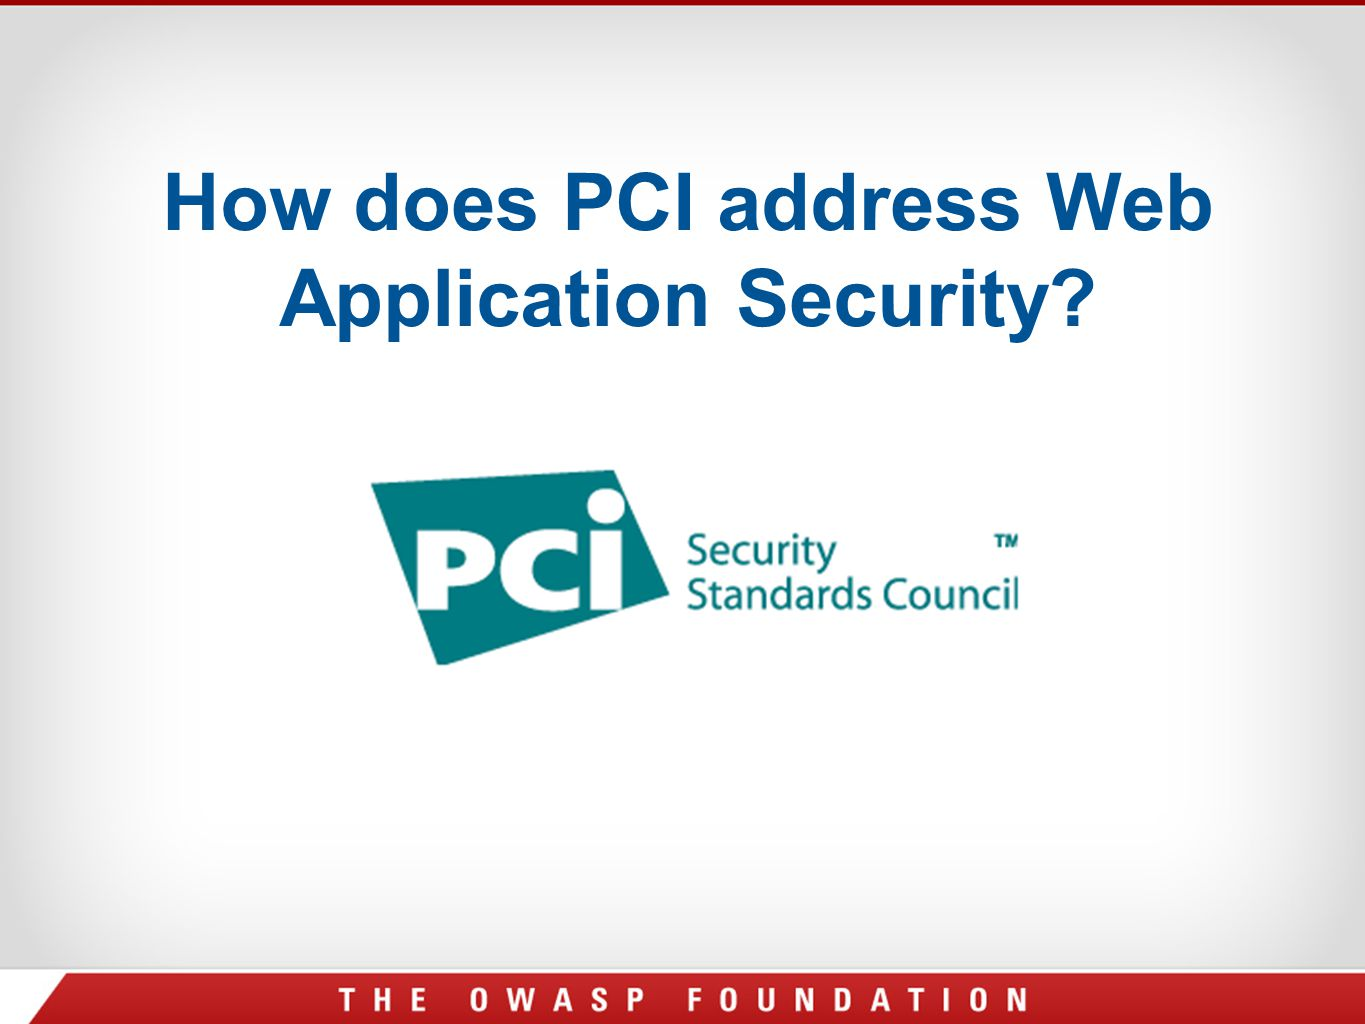 How does PCI address Web Application Security